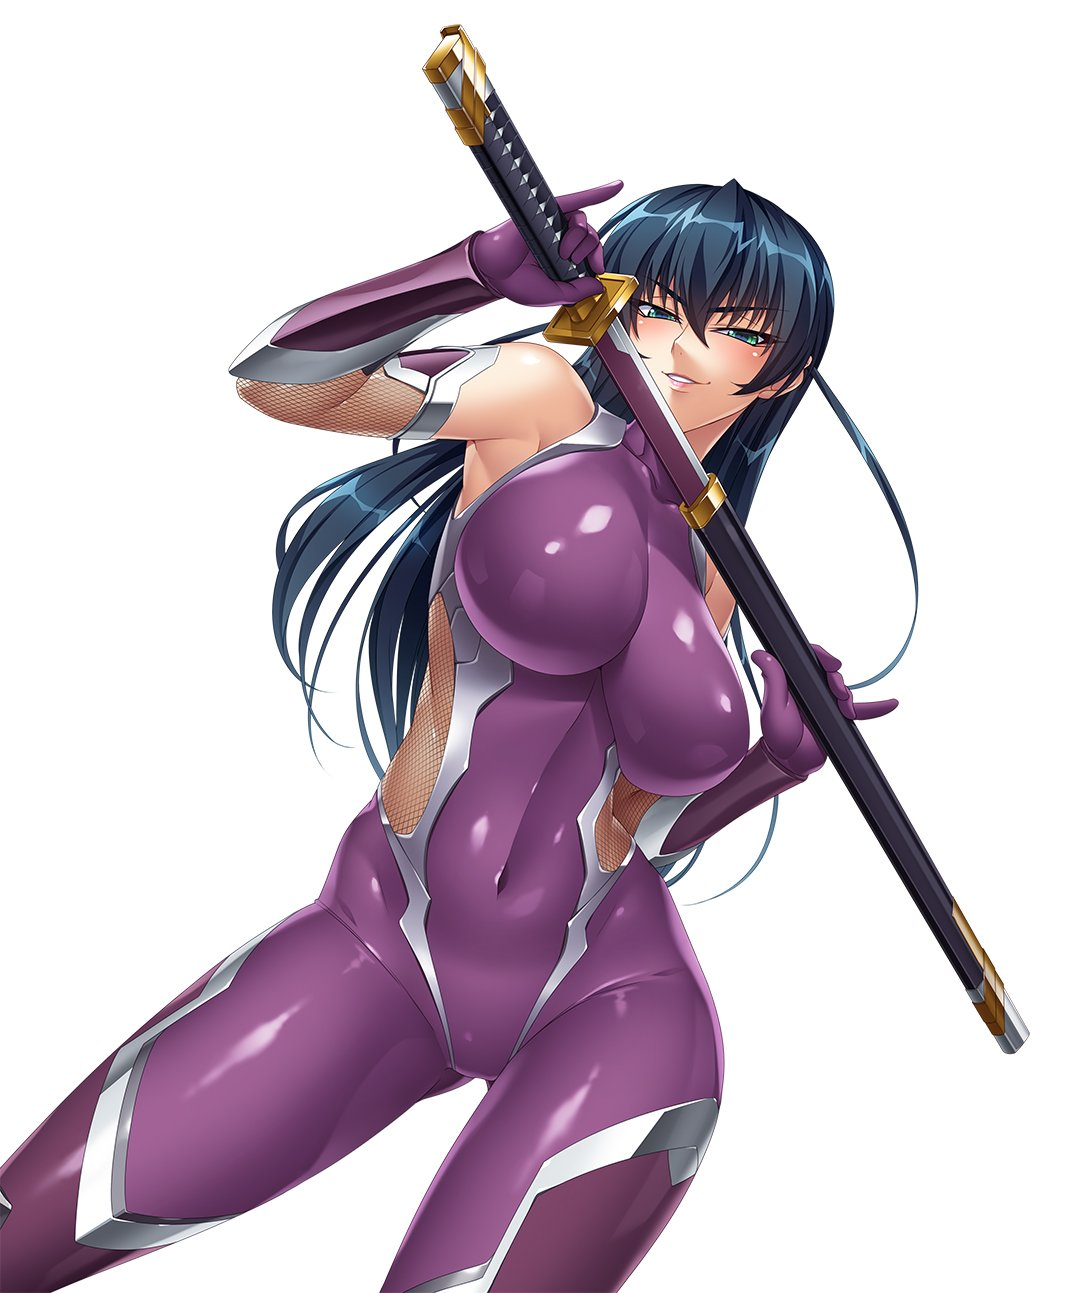 1girl aqua_eyes bangs bare_shoulders blue_hair bodysuit breasts covered_collarbone covered_navel elbow_gloves eyebrows_visible_through_hair fishnets gloves highres holding holding_sword holding_weapon igawa_asagi impossible_bodysuit impossible_clothes kagami_hirotaka katana large_breasts lipstick long_hair makeup official_art parted_lips sheath shiny shiny_clothes shiny_hair shiny_skin simple_background skin_tight sleeveless smile solo sword taimanin_(series) taimanin_asagi thigh-highs weapon white_background